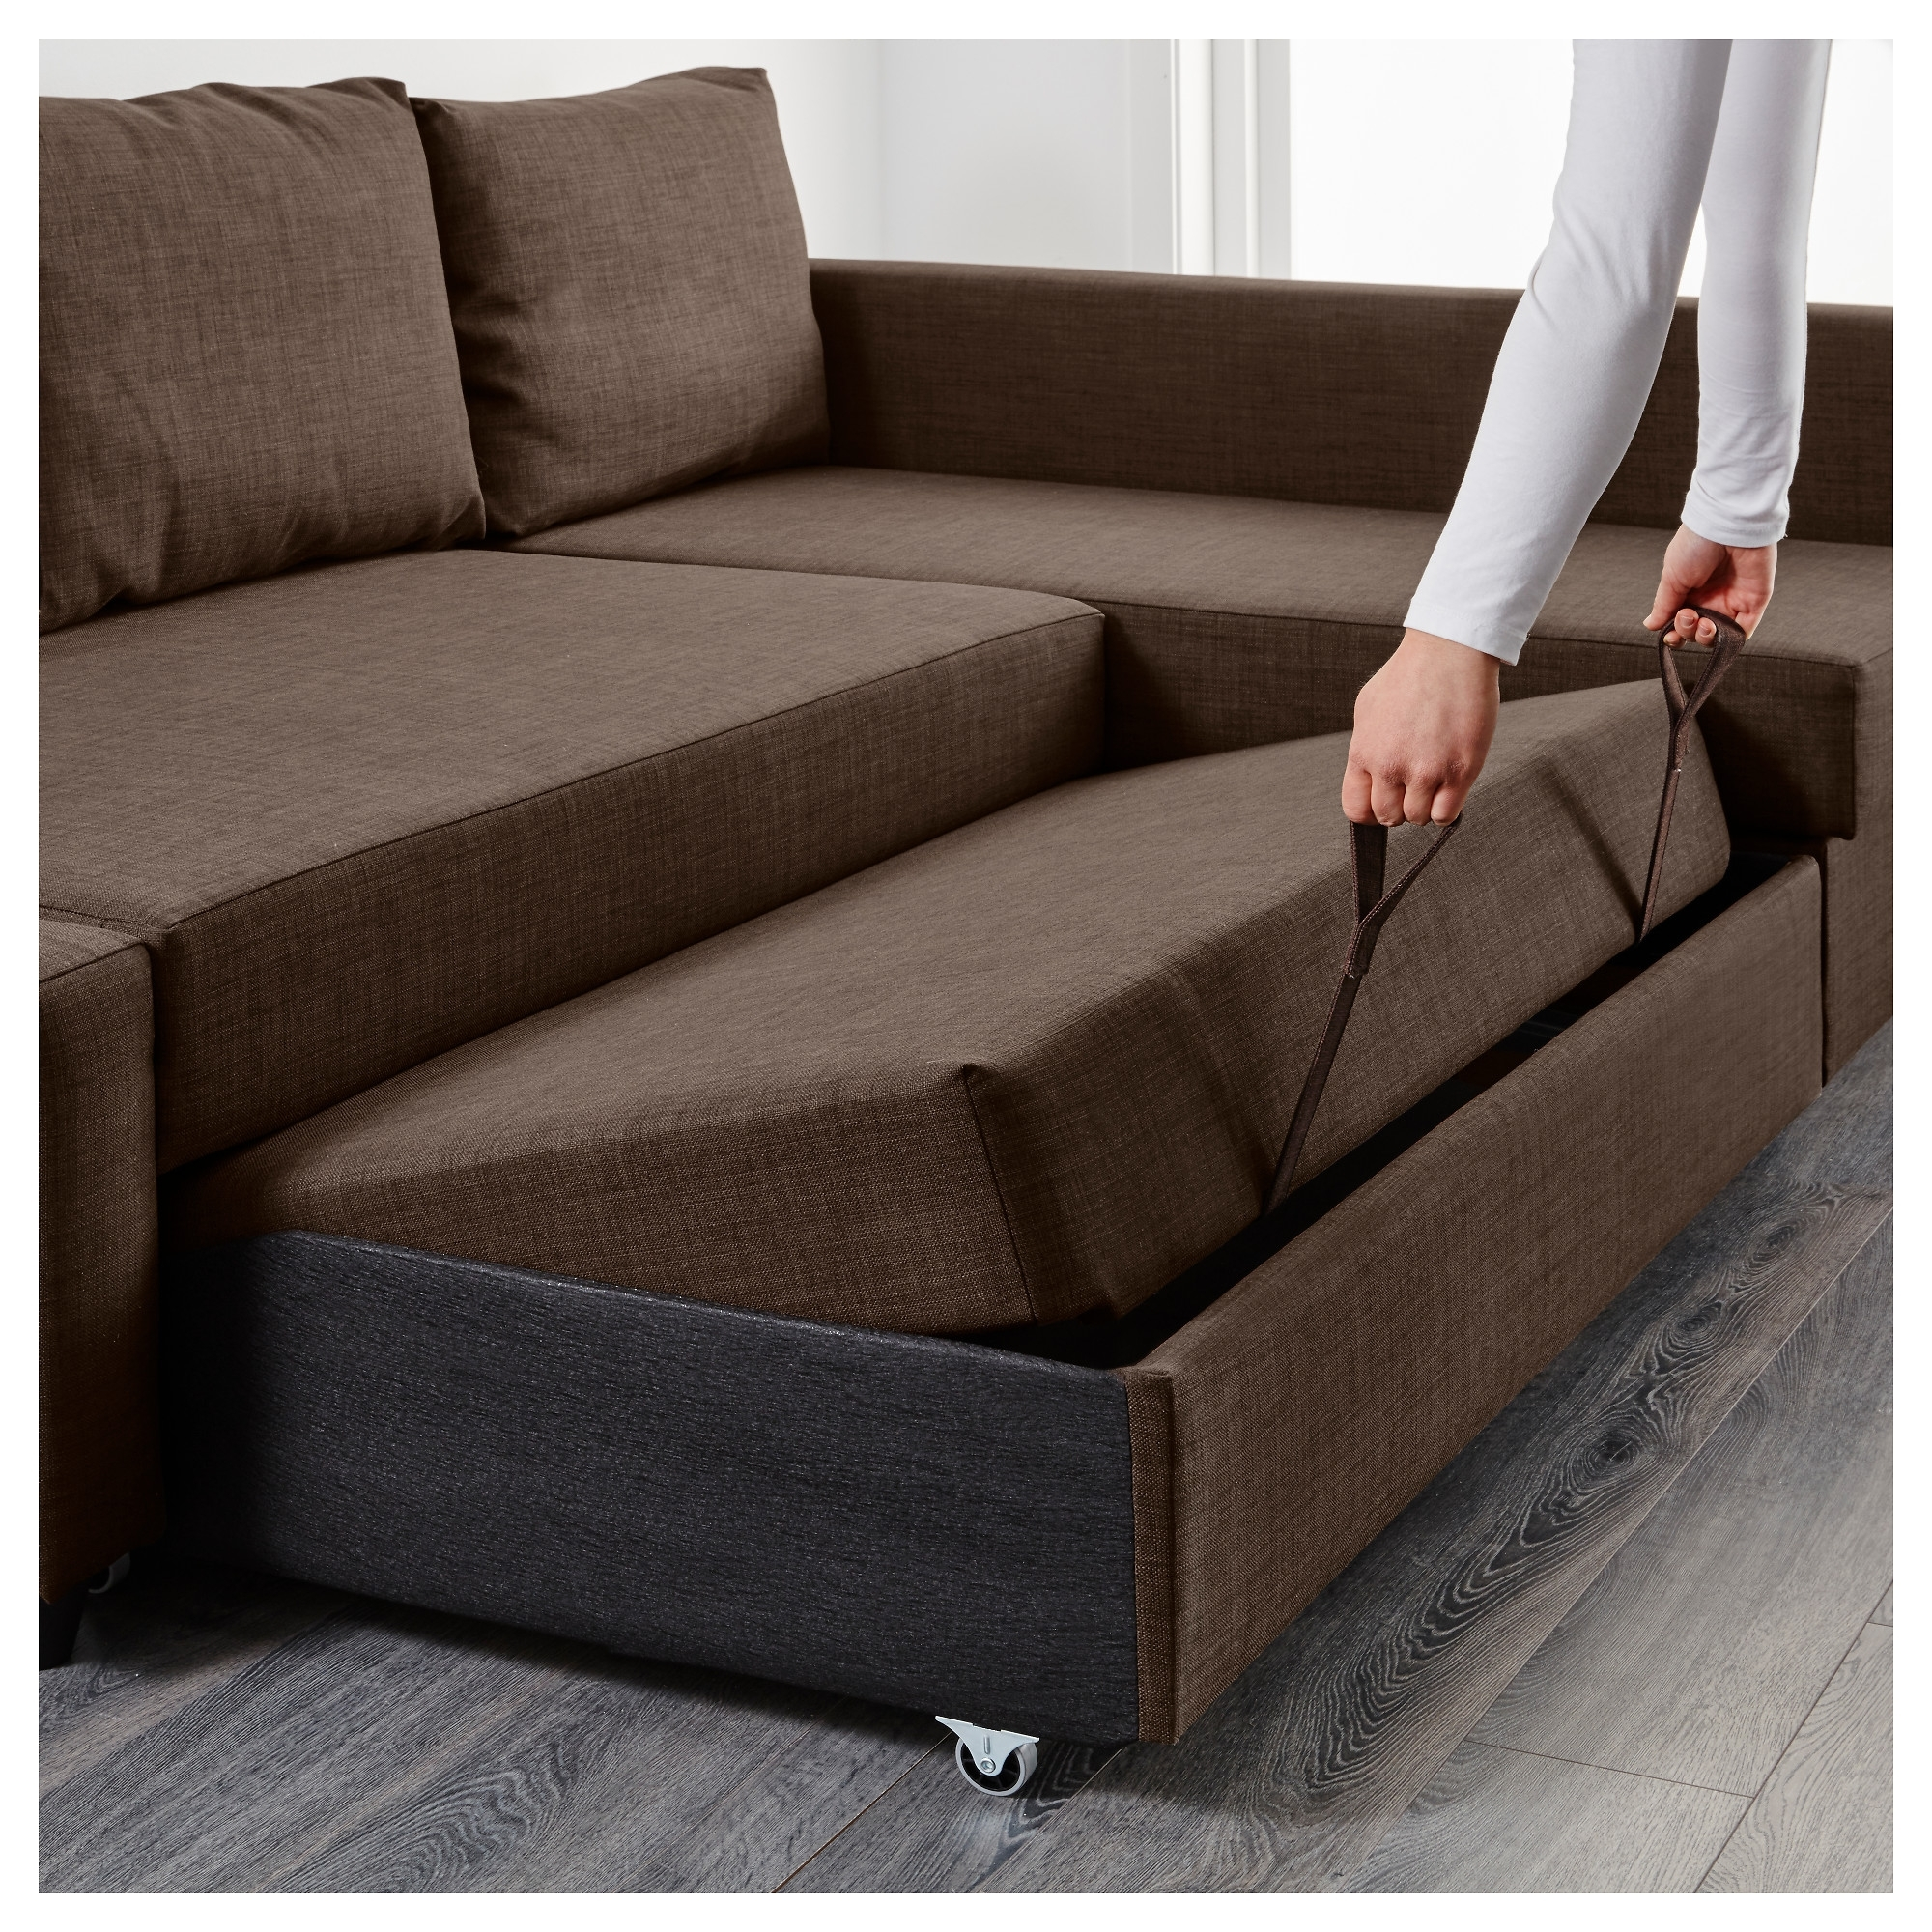 Ikea Sectional Sleeper Sofas For Well Liked Friheten Sleeper Sectional,3 Seat W/storage – Skiftebo Dark Gray (View 4 of 20)